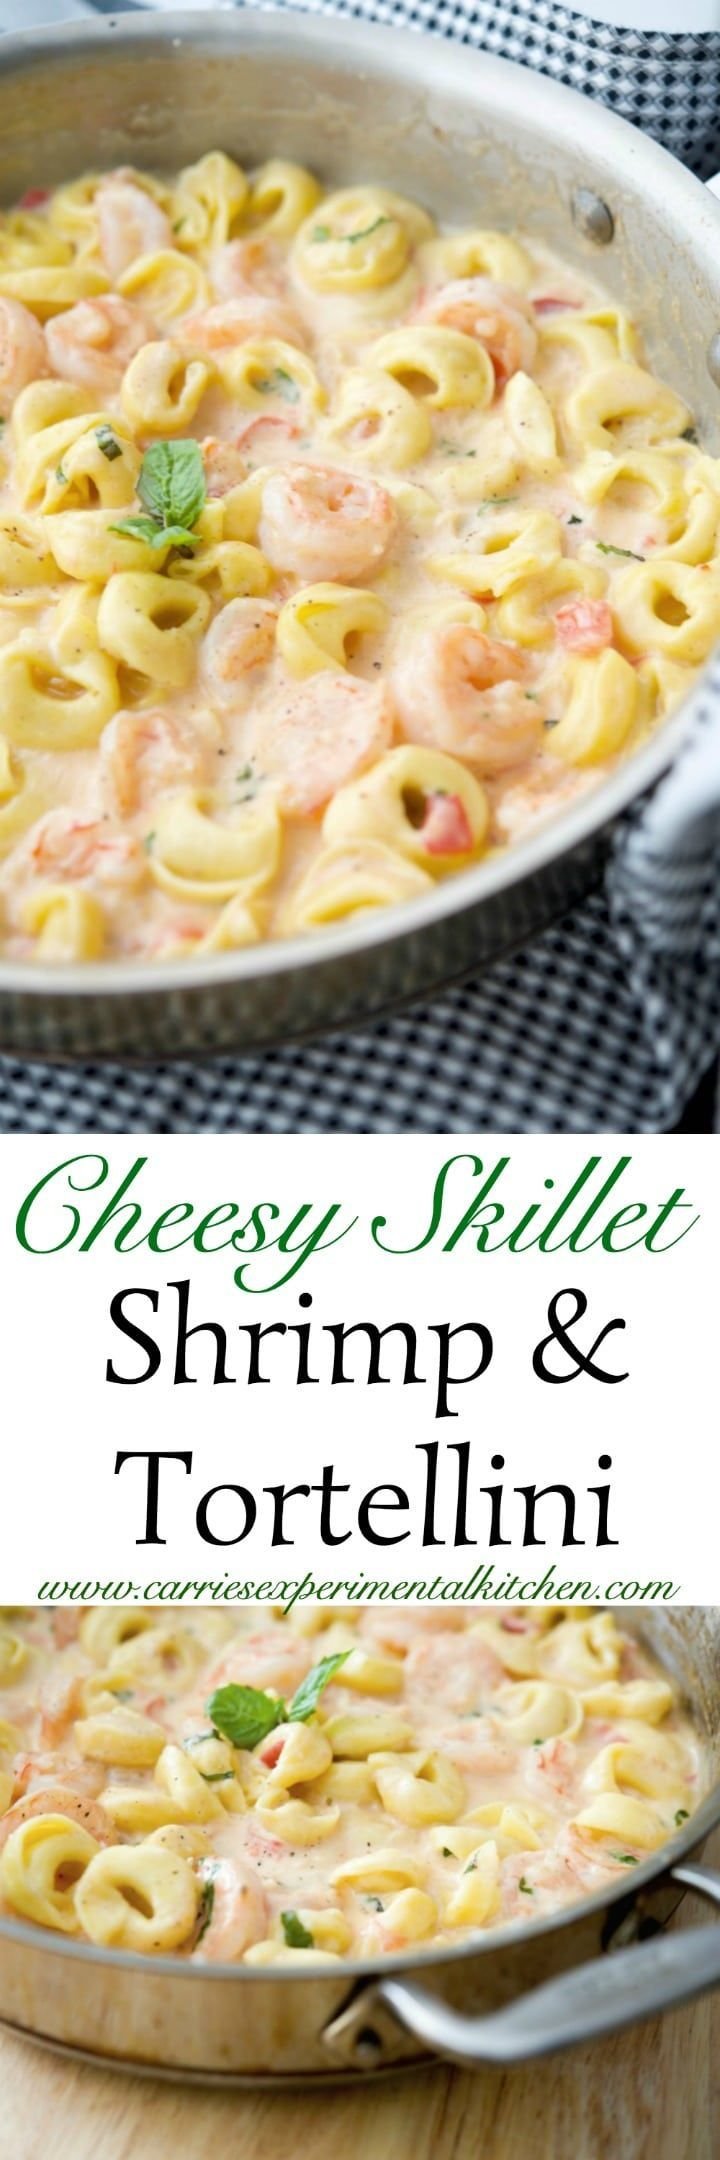 Cheesy Skillet Shrimp & Tortellini made with jumbo shrimp combined with cheese tortellini in a cheesy tomato basil Alfredo sauce.